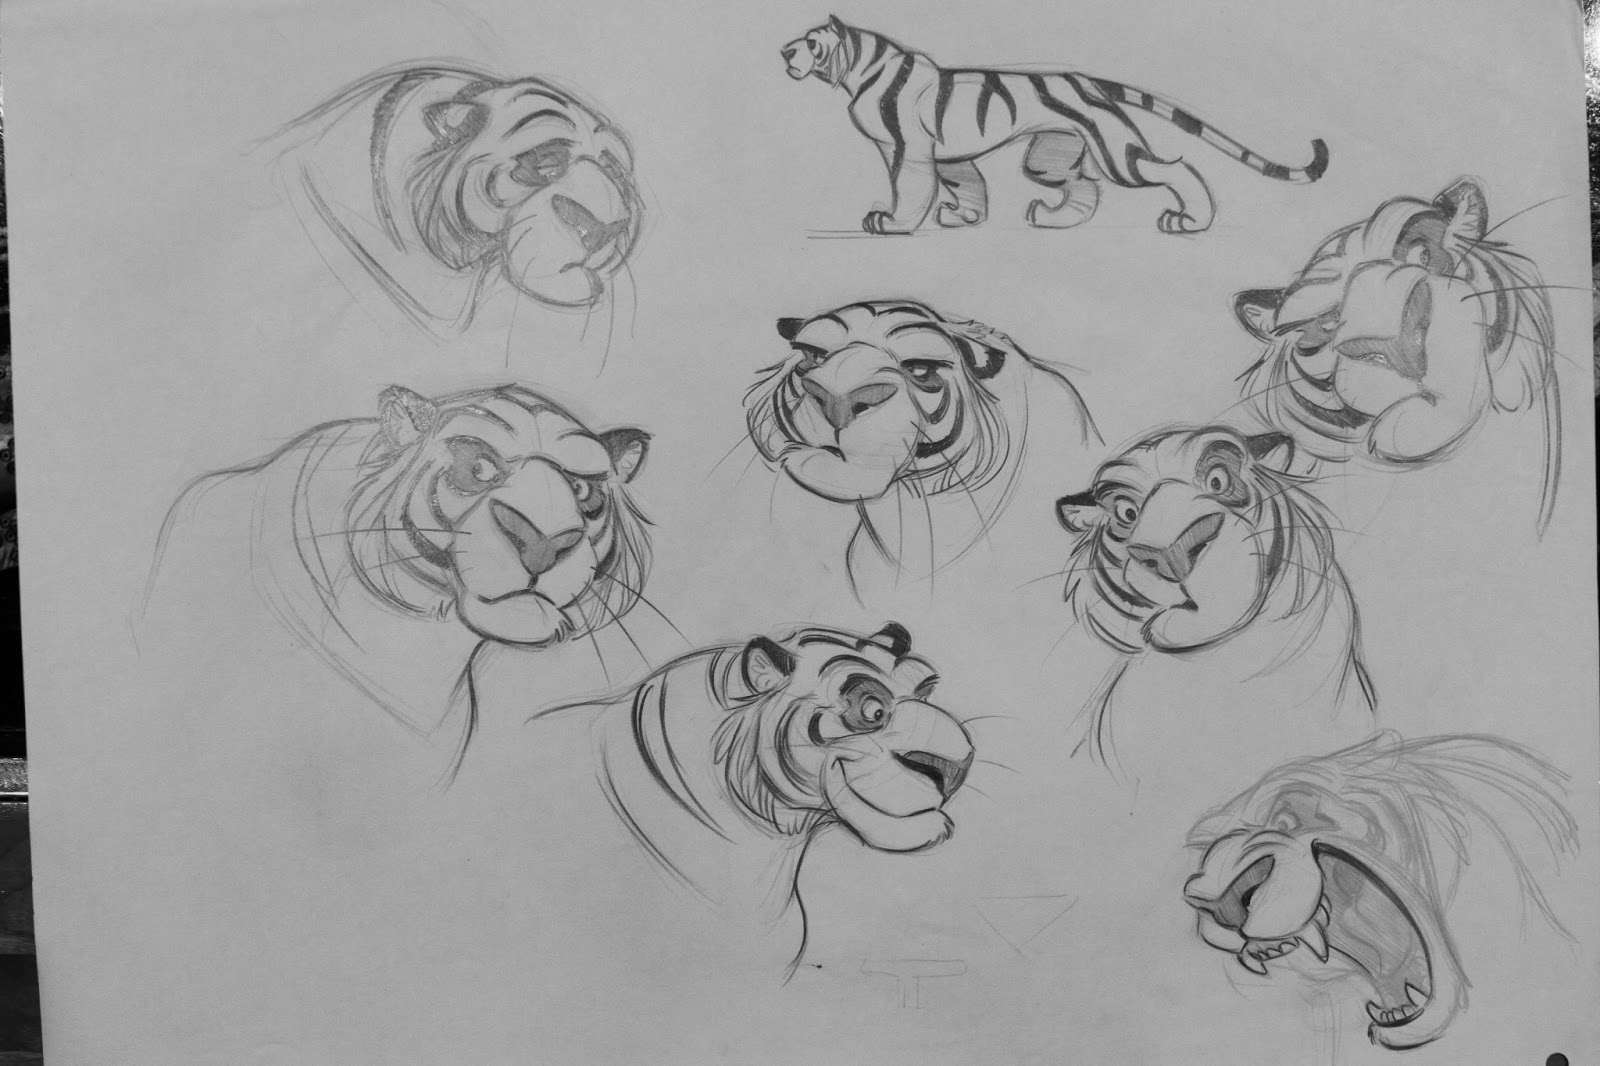 Old Animation Design Drawings - The Art of Aaron Blaise